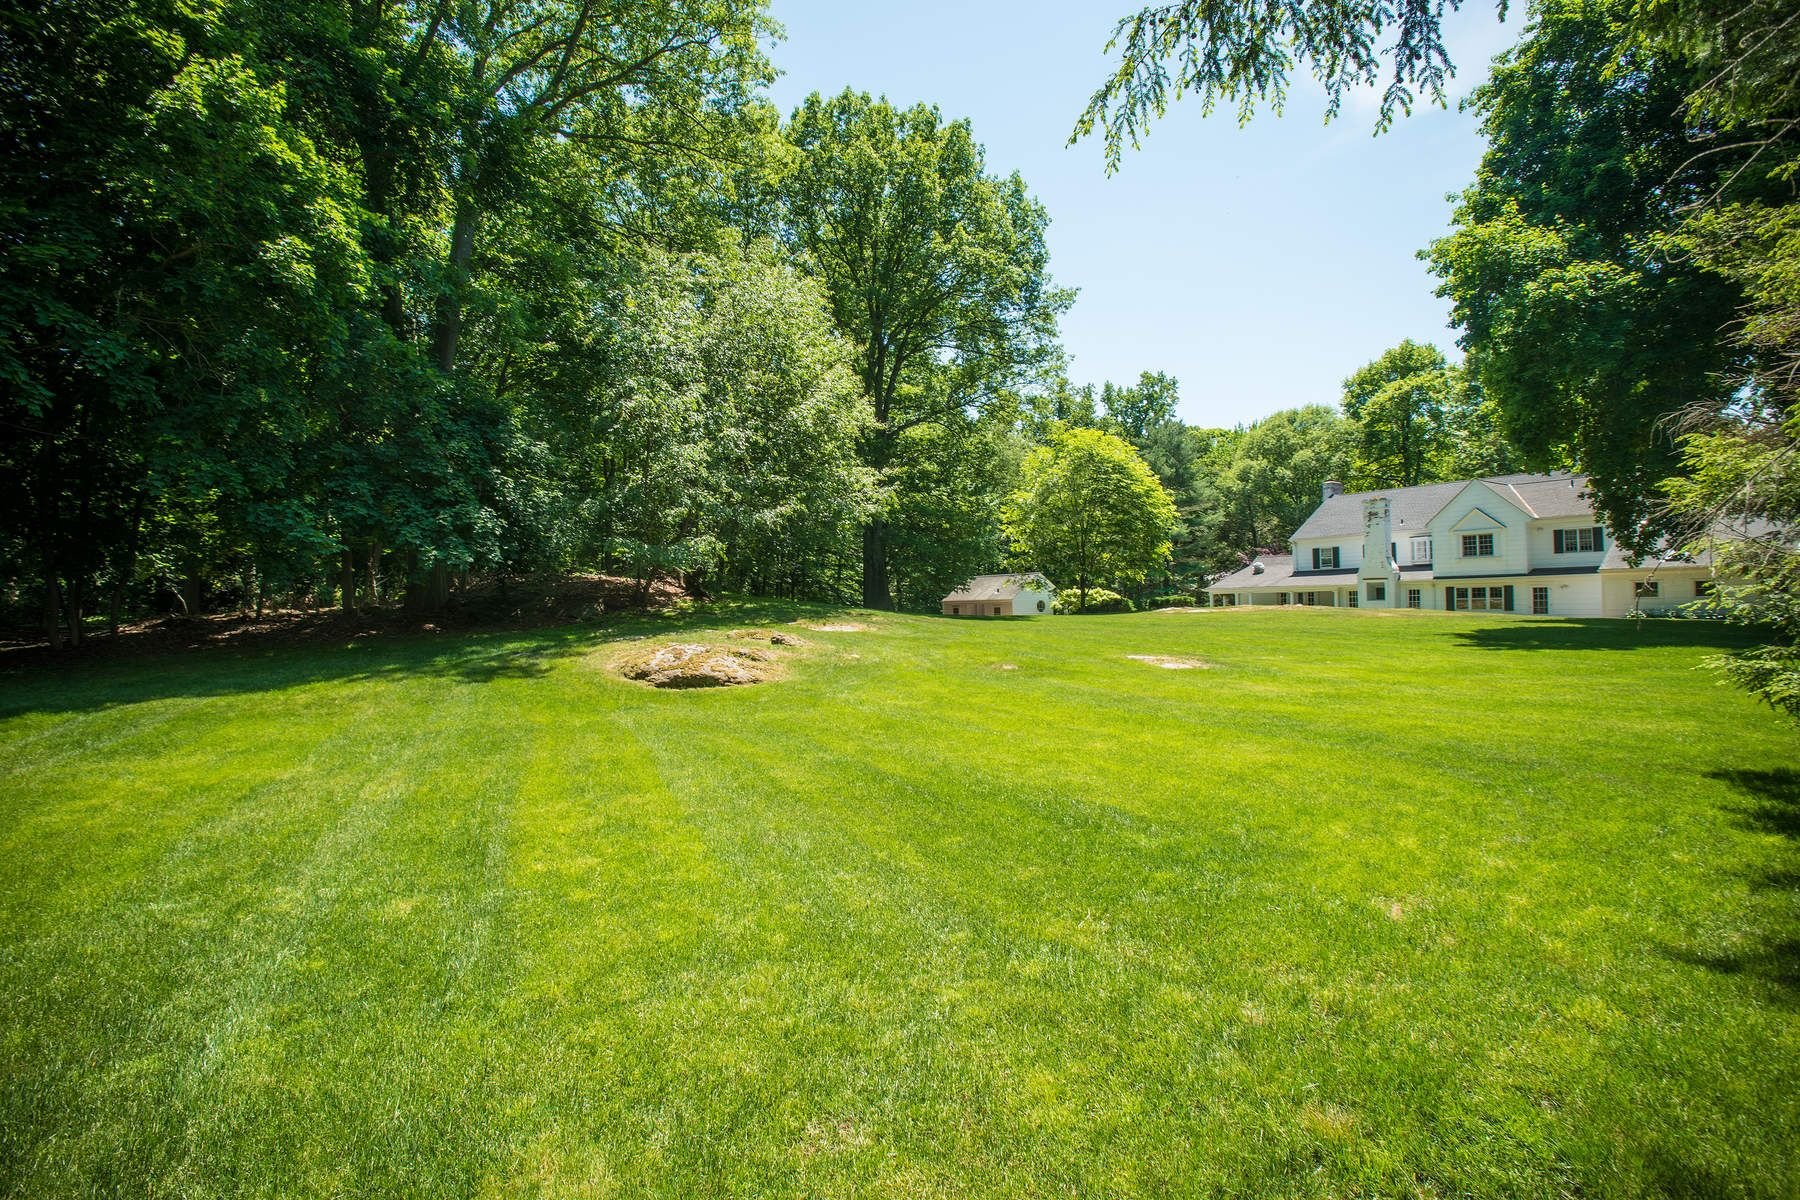 Single Family Home for Sale at Classic Deer park Greenwich, Connecticut, 06830 United States